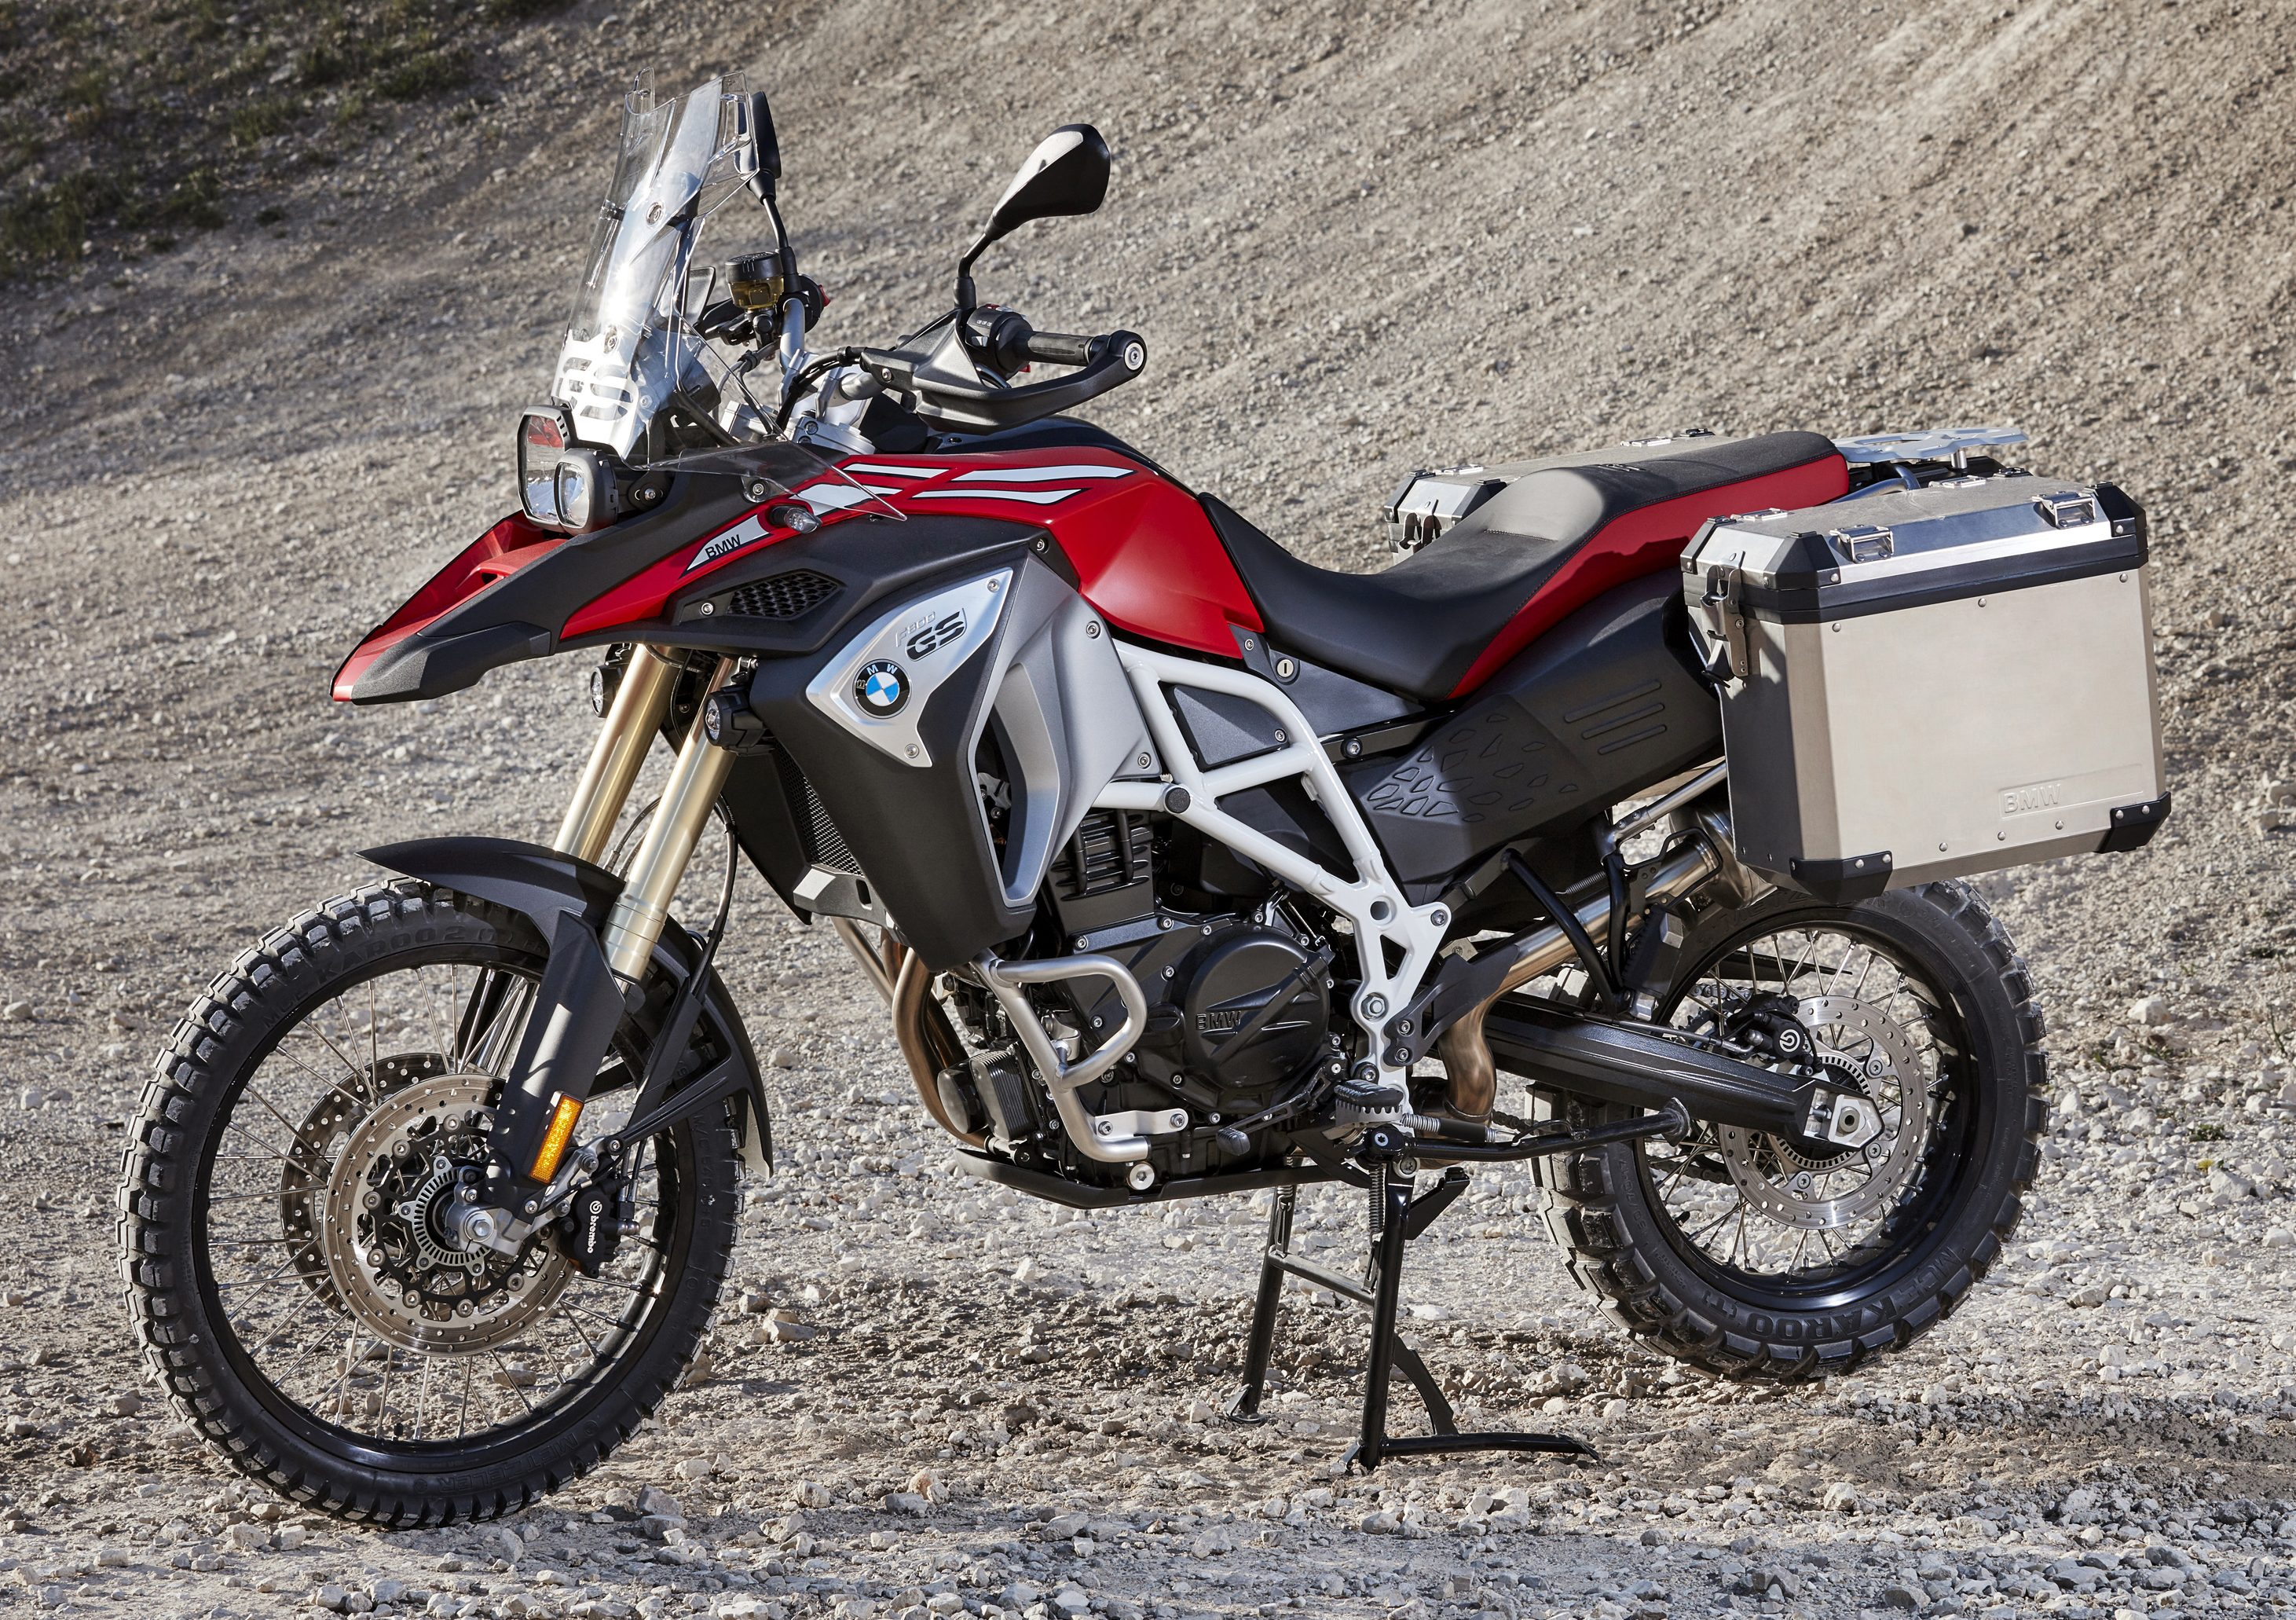 2017 BMW Motorrad F700 GS, F800 GS and F800 GS Adventure ...